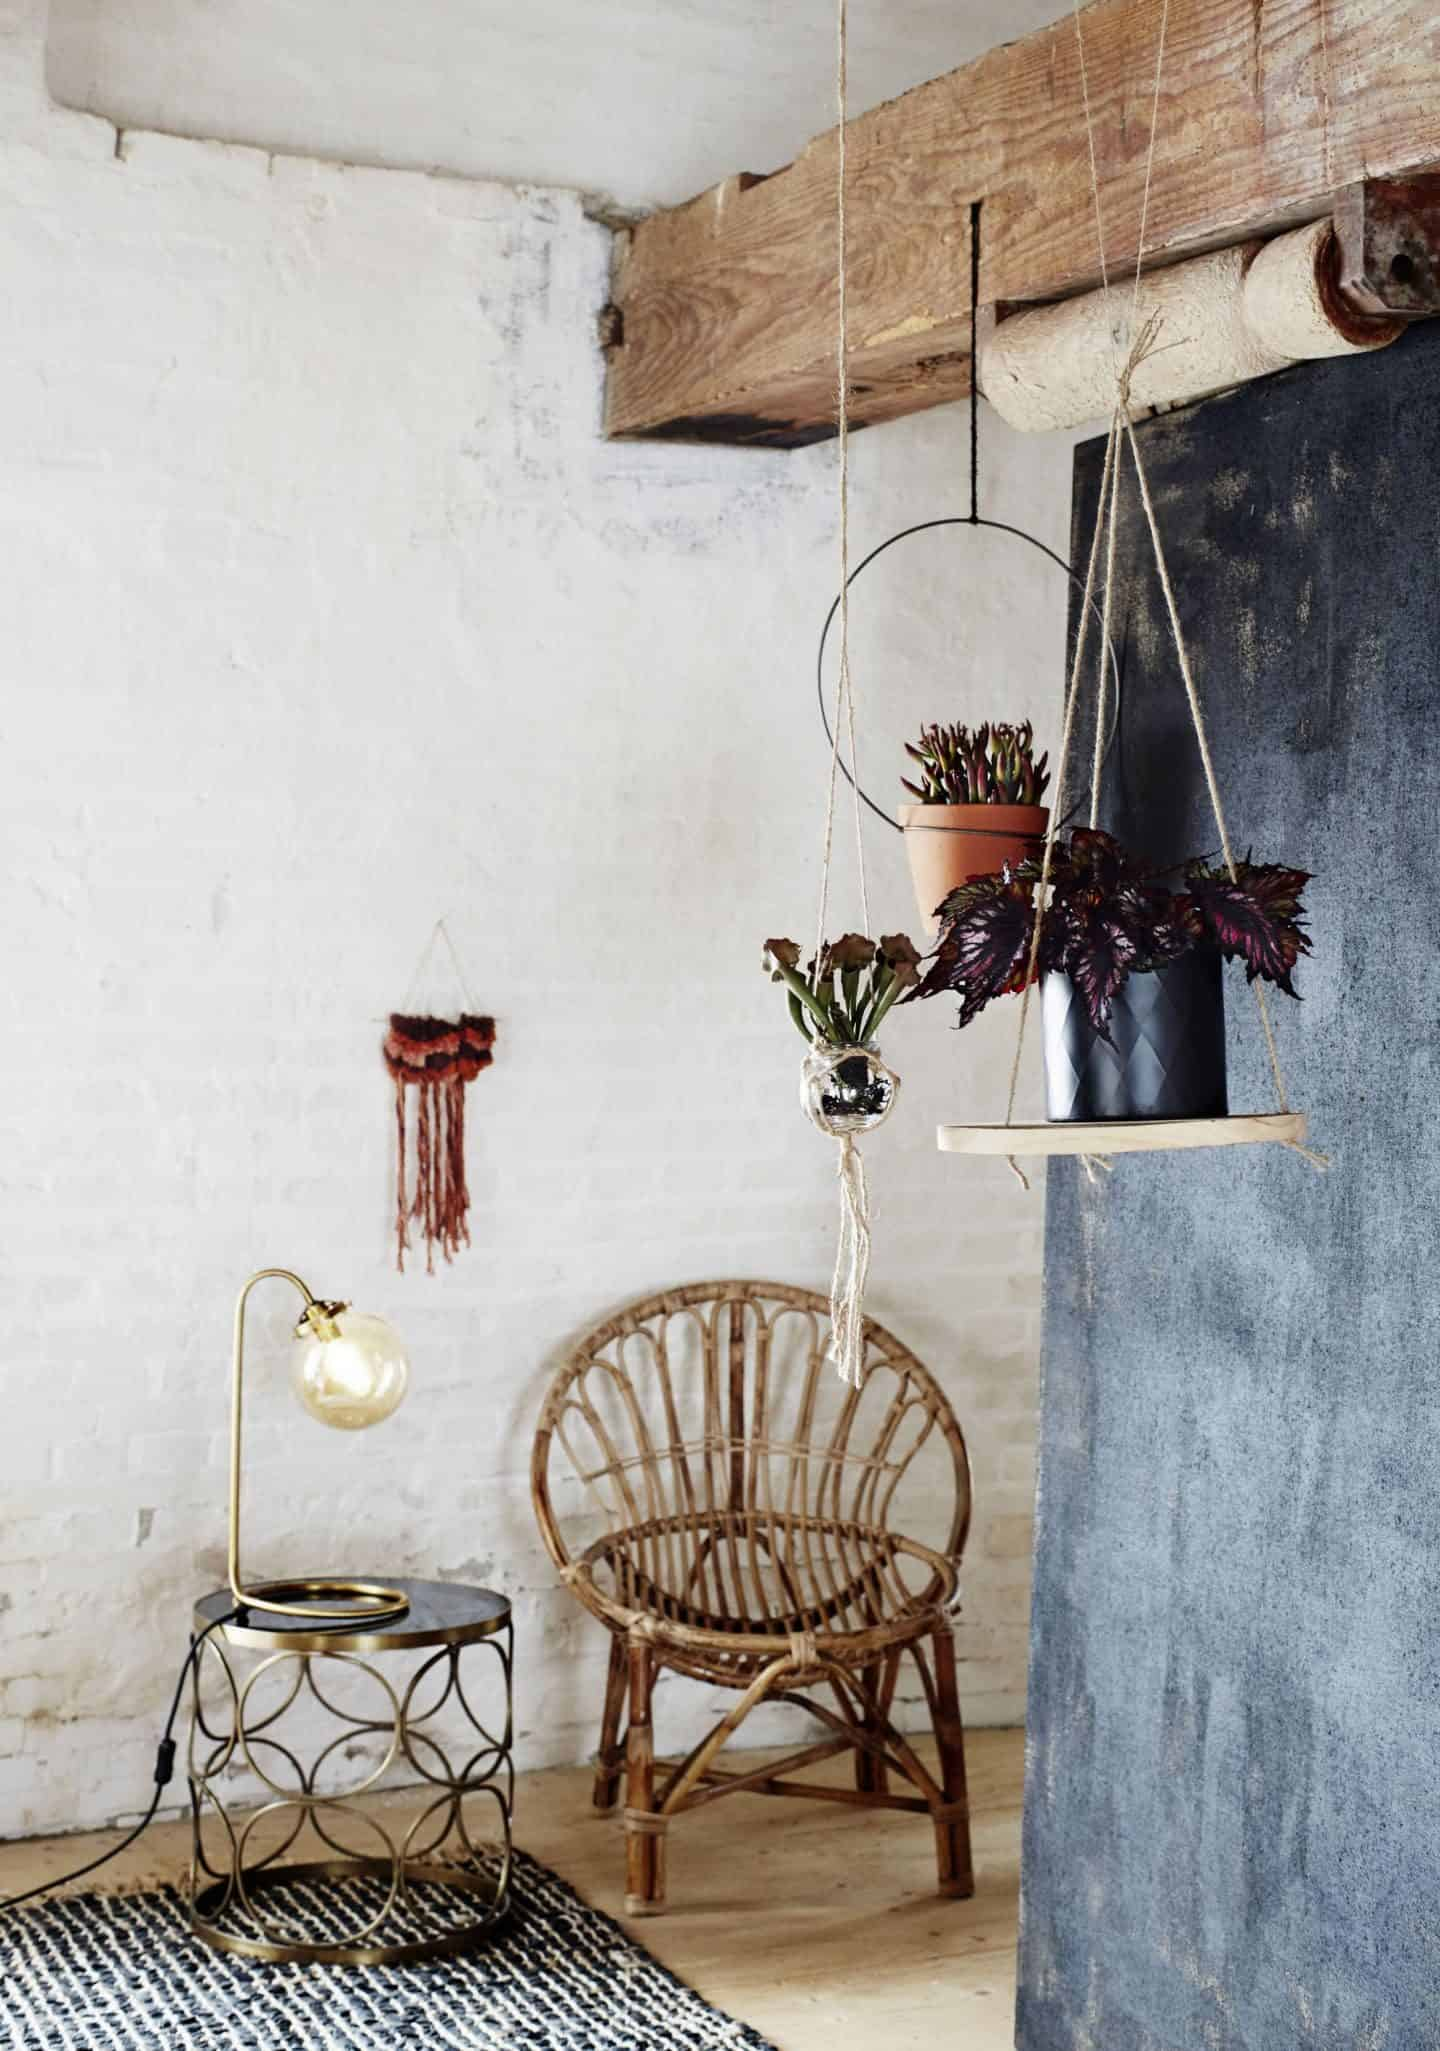 A bohemian style display from Madam Stolz featuring bamboo furniture and plants hanging from the rafters of a rustic style room